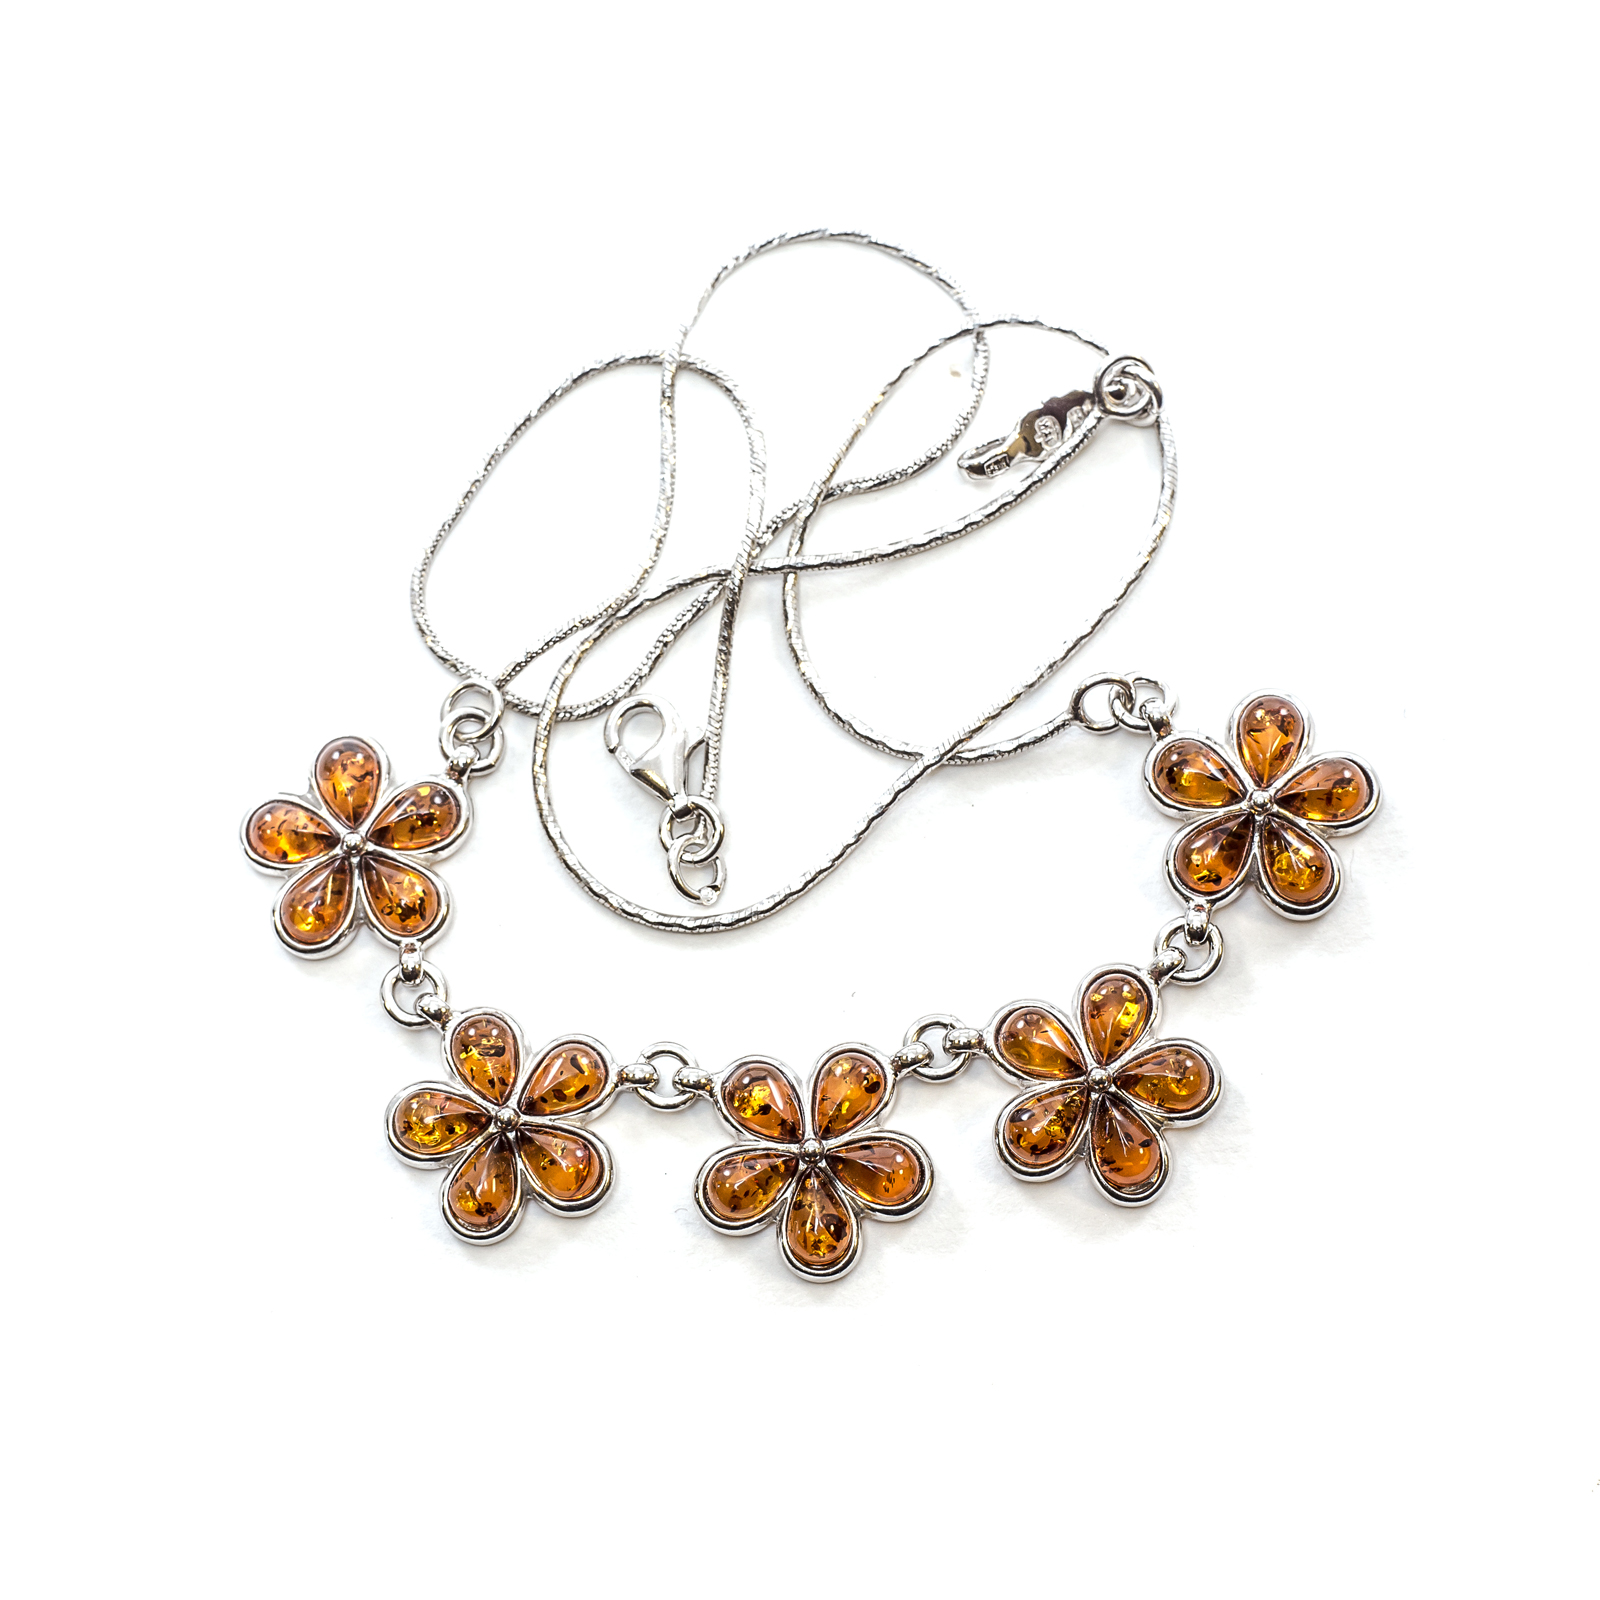 d09f70f89 Silver Necklace with Natural Baltic Amber